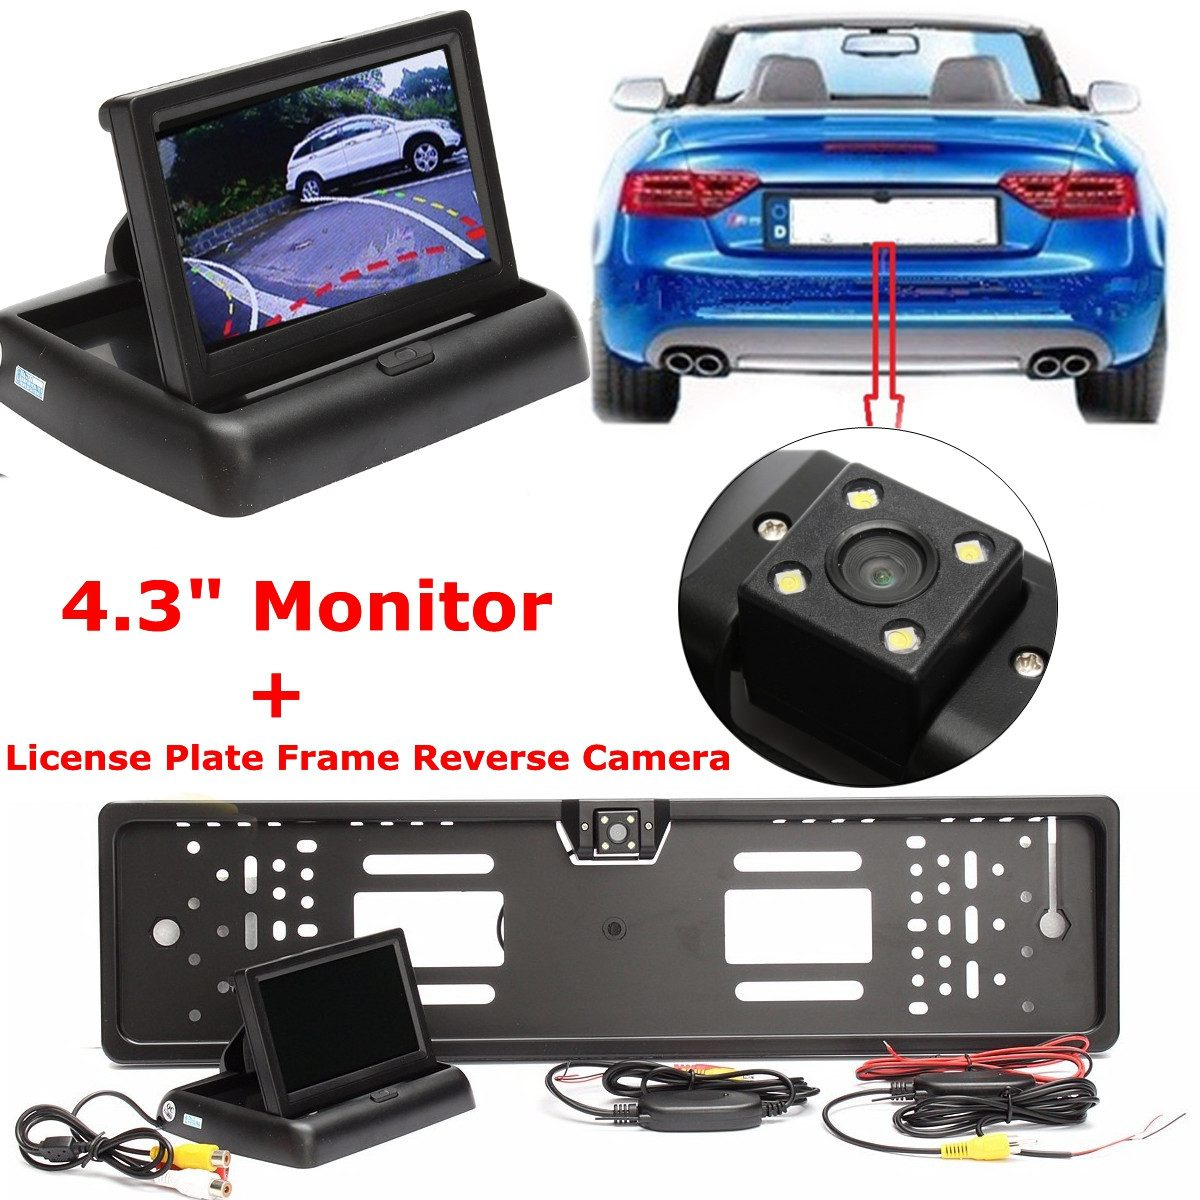 Car CCD HD LED 4.3 Monitor Screen Vehicle Wireless License Plate Frame Reverse Rear View Camera Kits Night Vision Waterproof